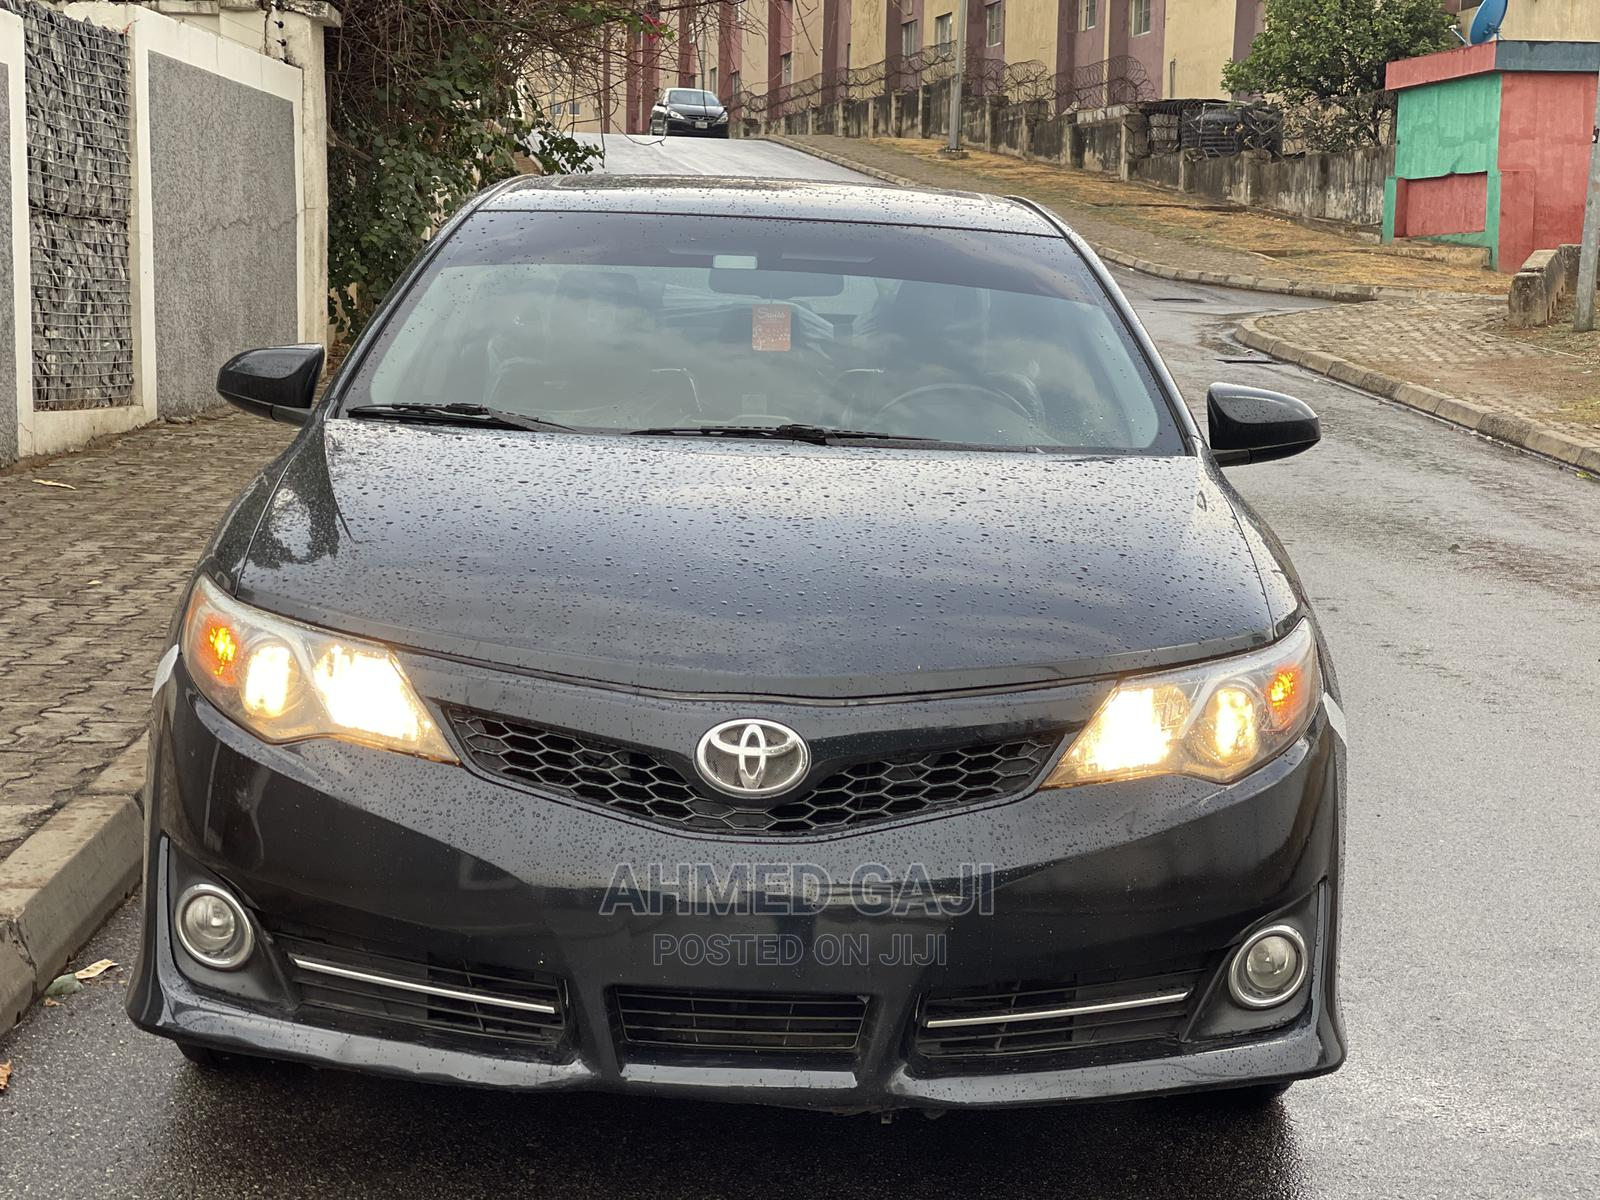 Archive: Toyota Camry 2013 Blue